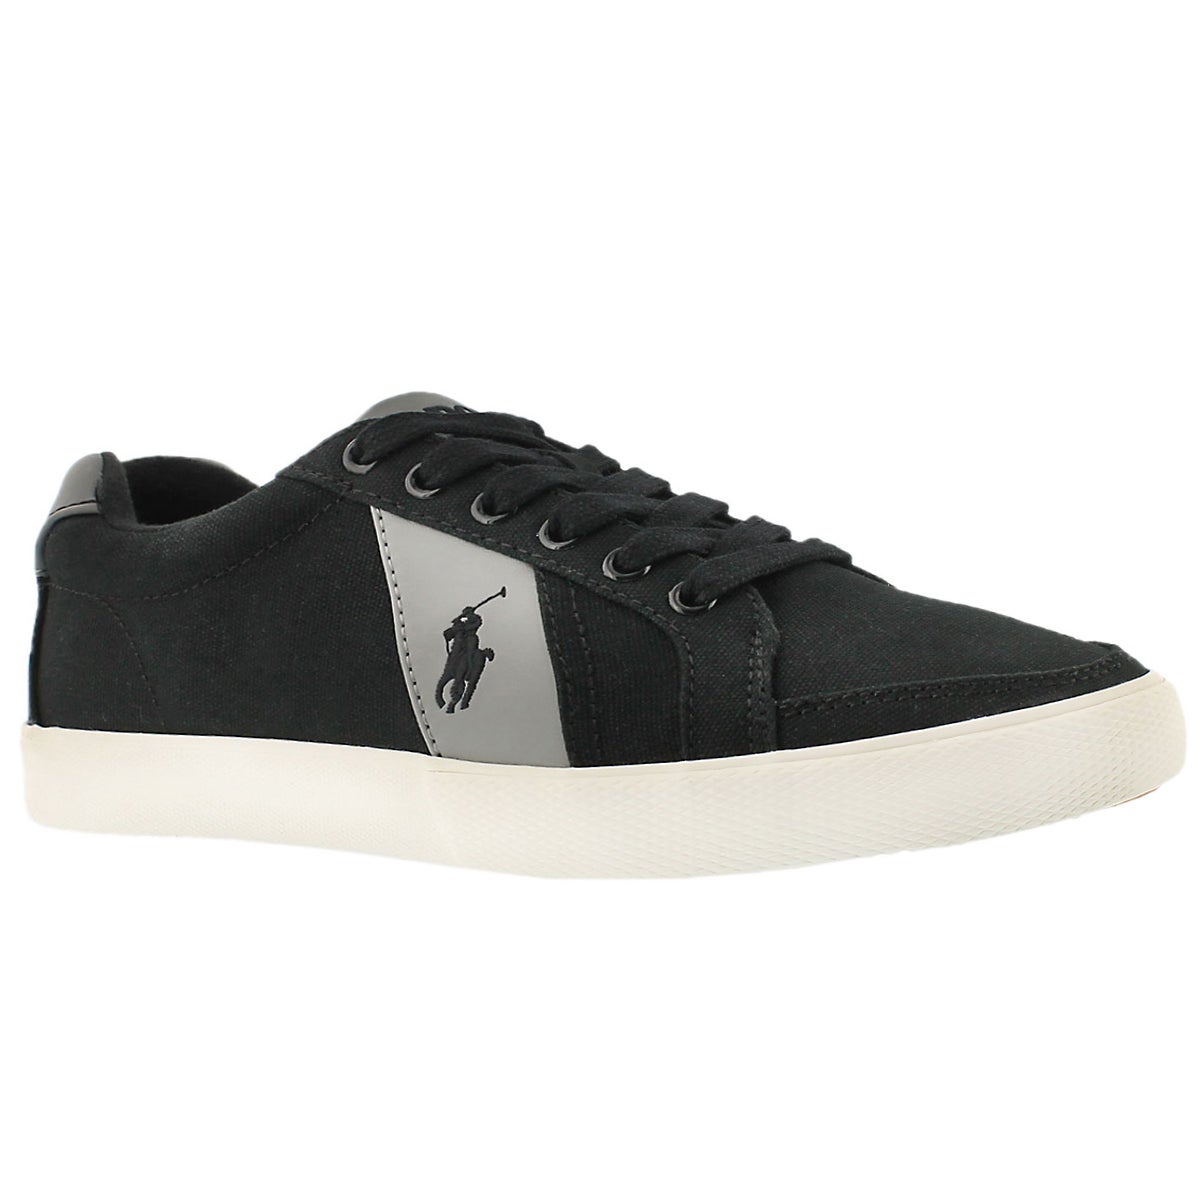 Men's HUGH black/grey canvas fashion sneakers